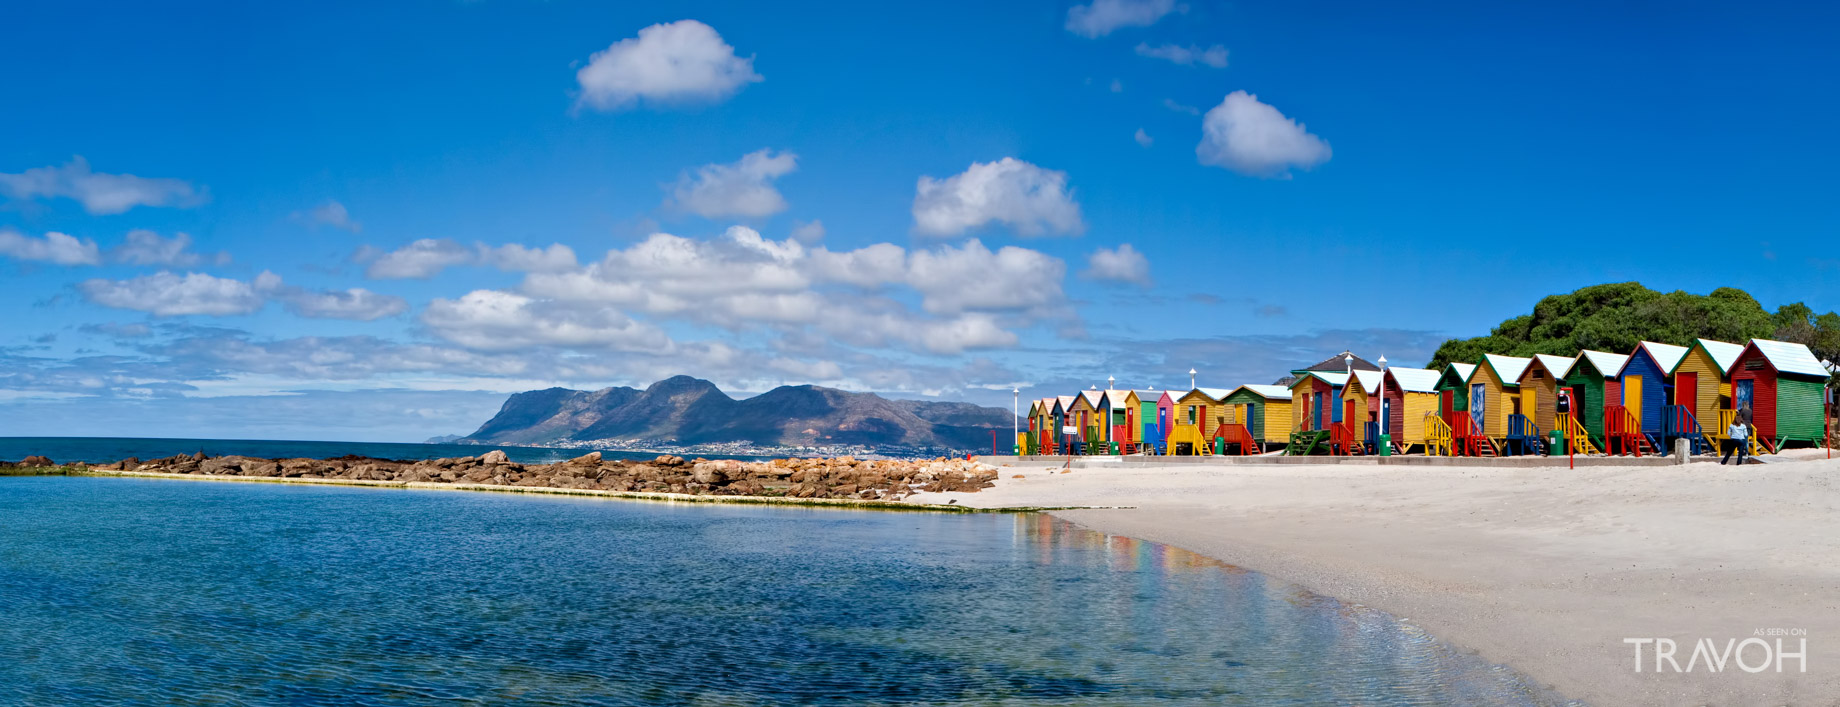 St James Beach - Exploring 10 of the Top Beaches in Cape Town South Africa